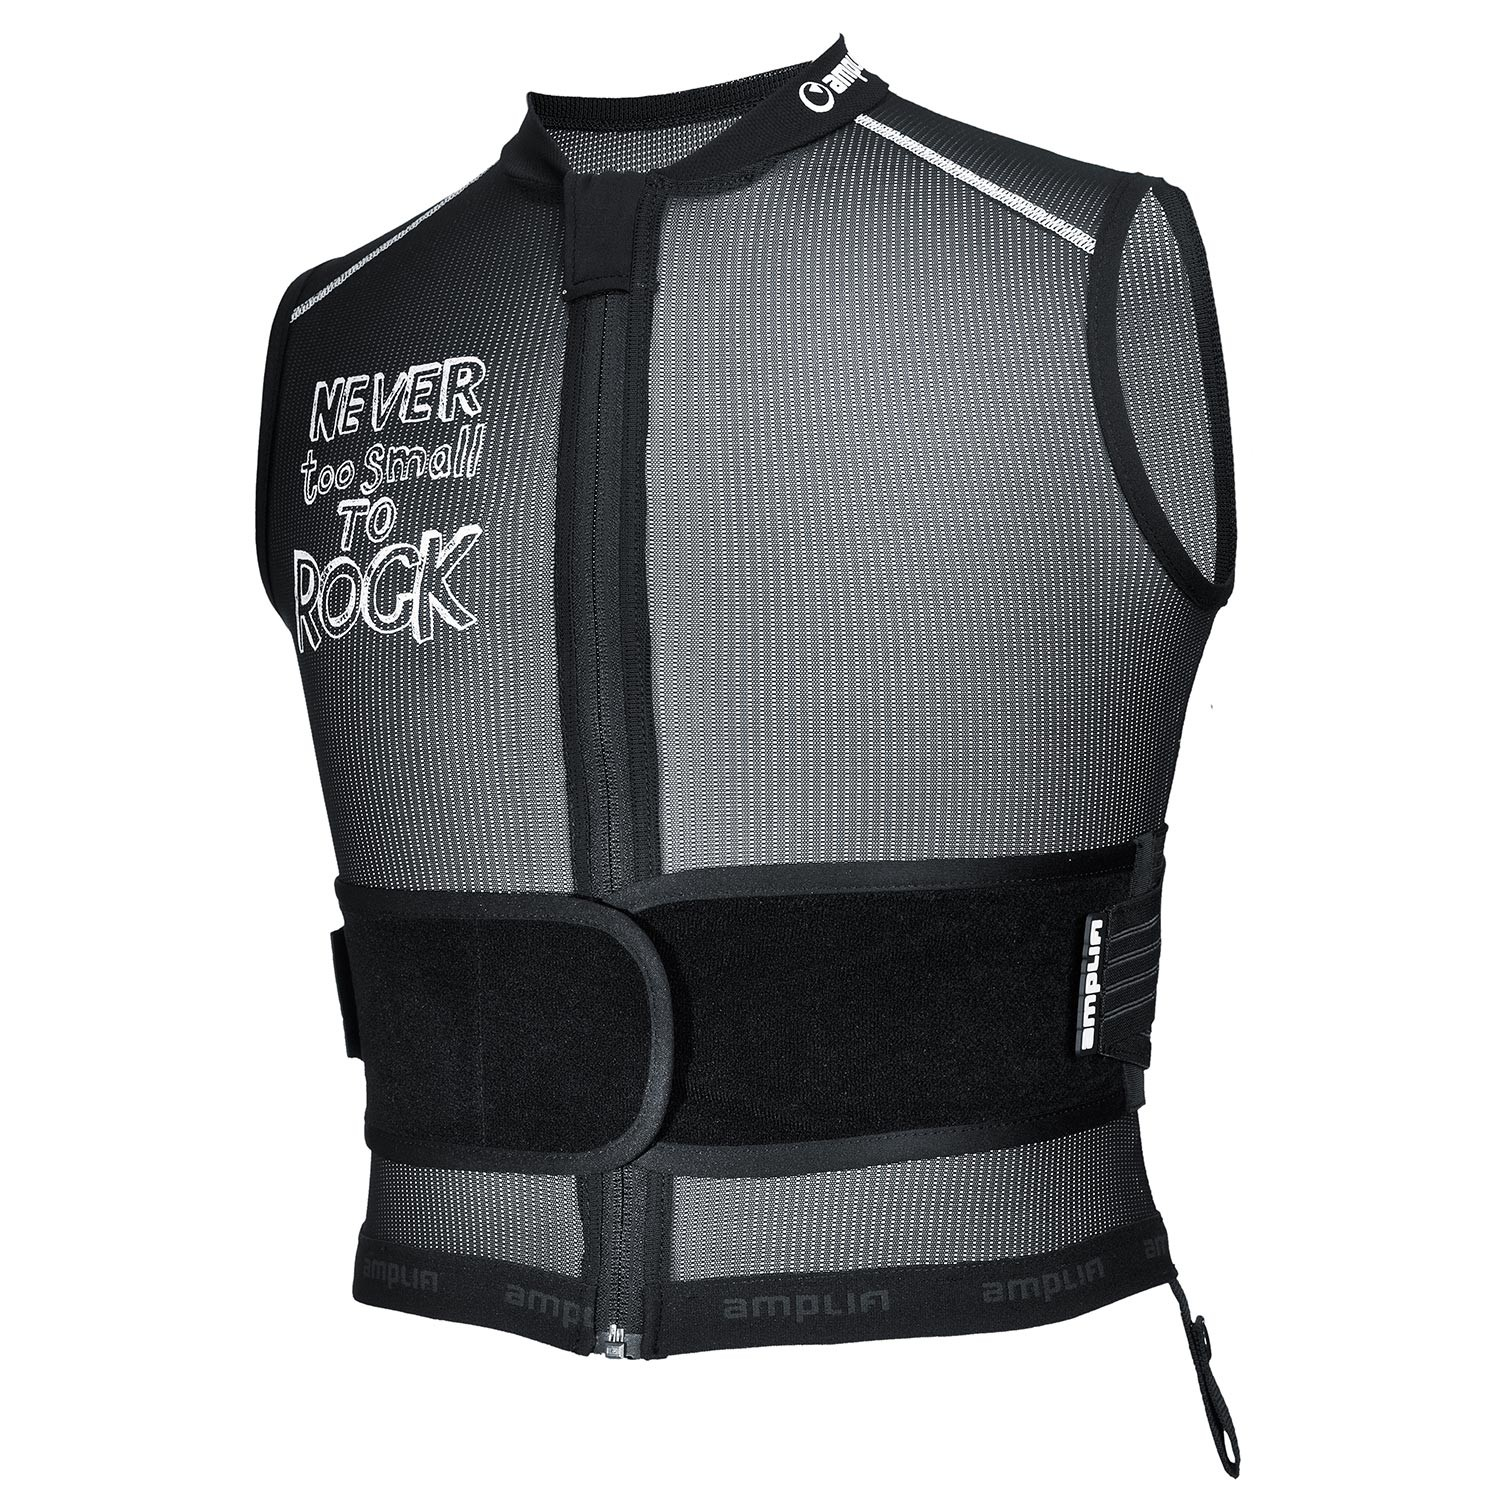 Chránič Amplifi Cortex Jacket Junior